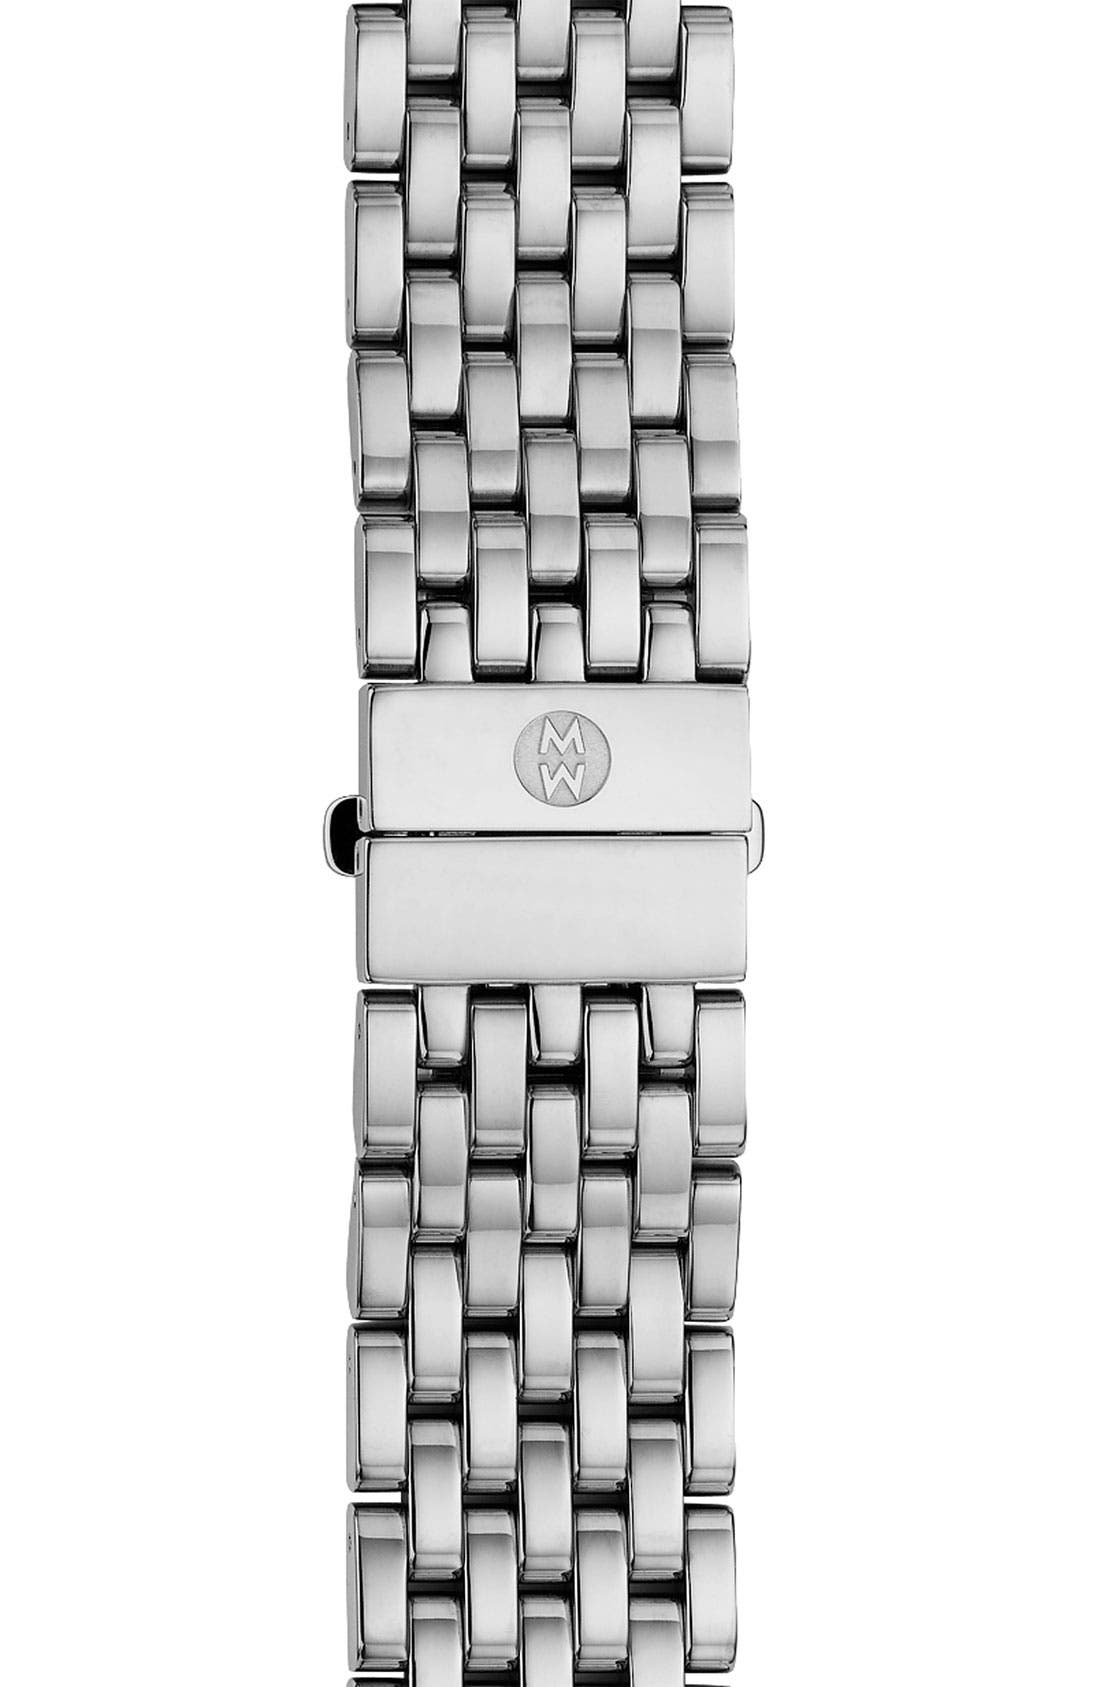 Main Image - MICHELE 'Serein' 18mm Watch Bracelet Band